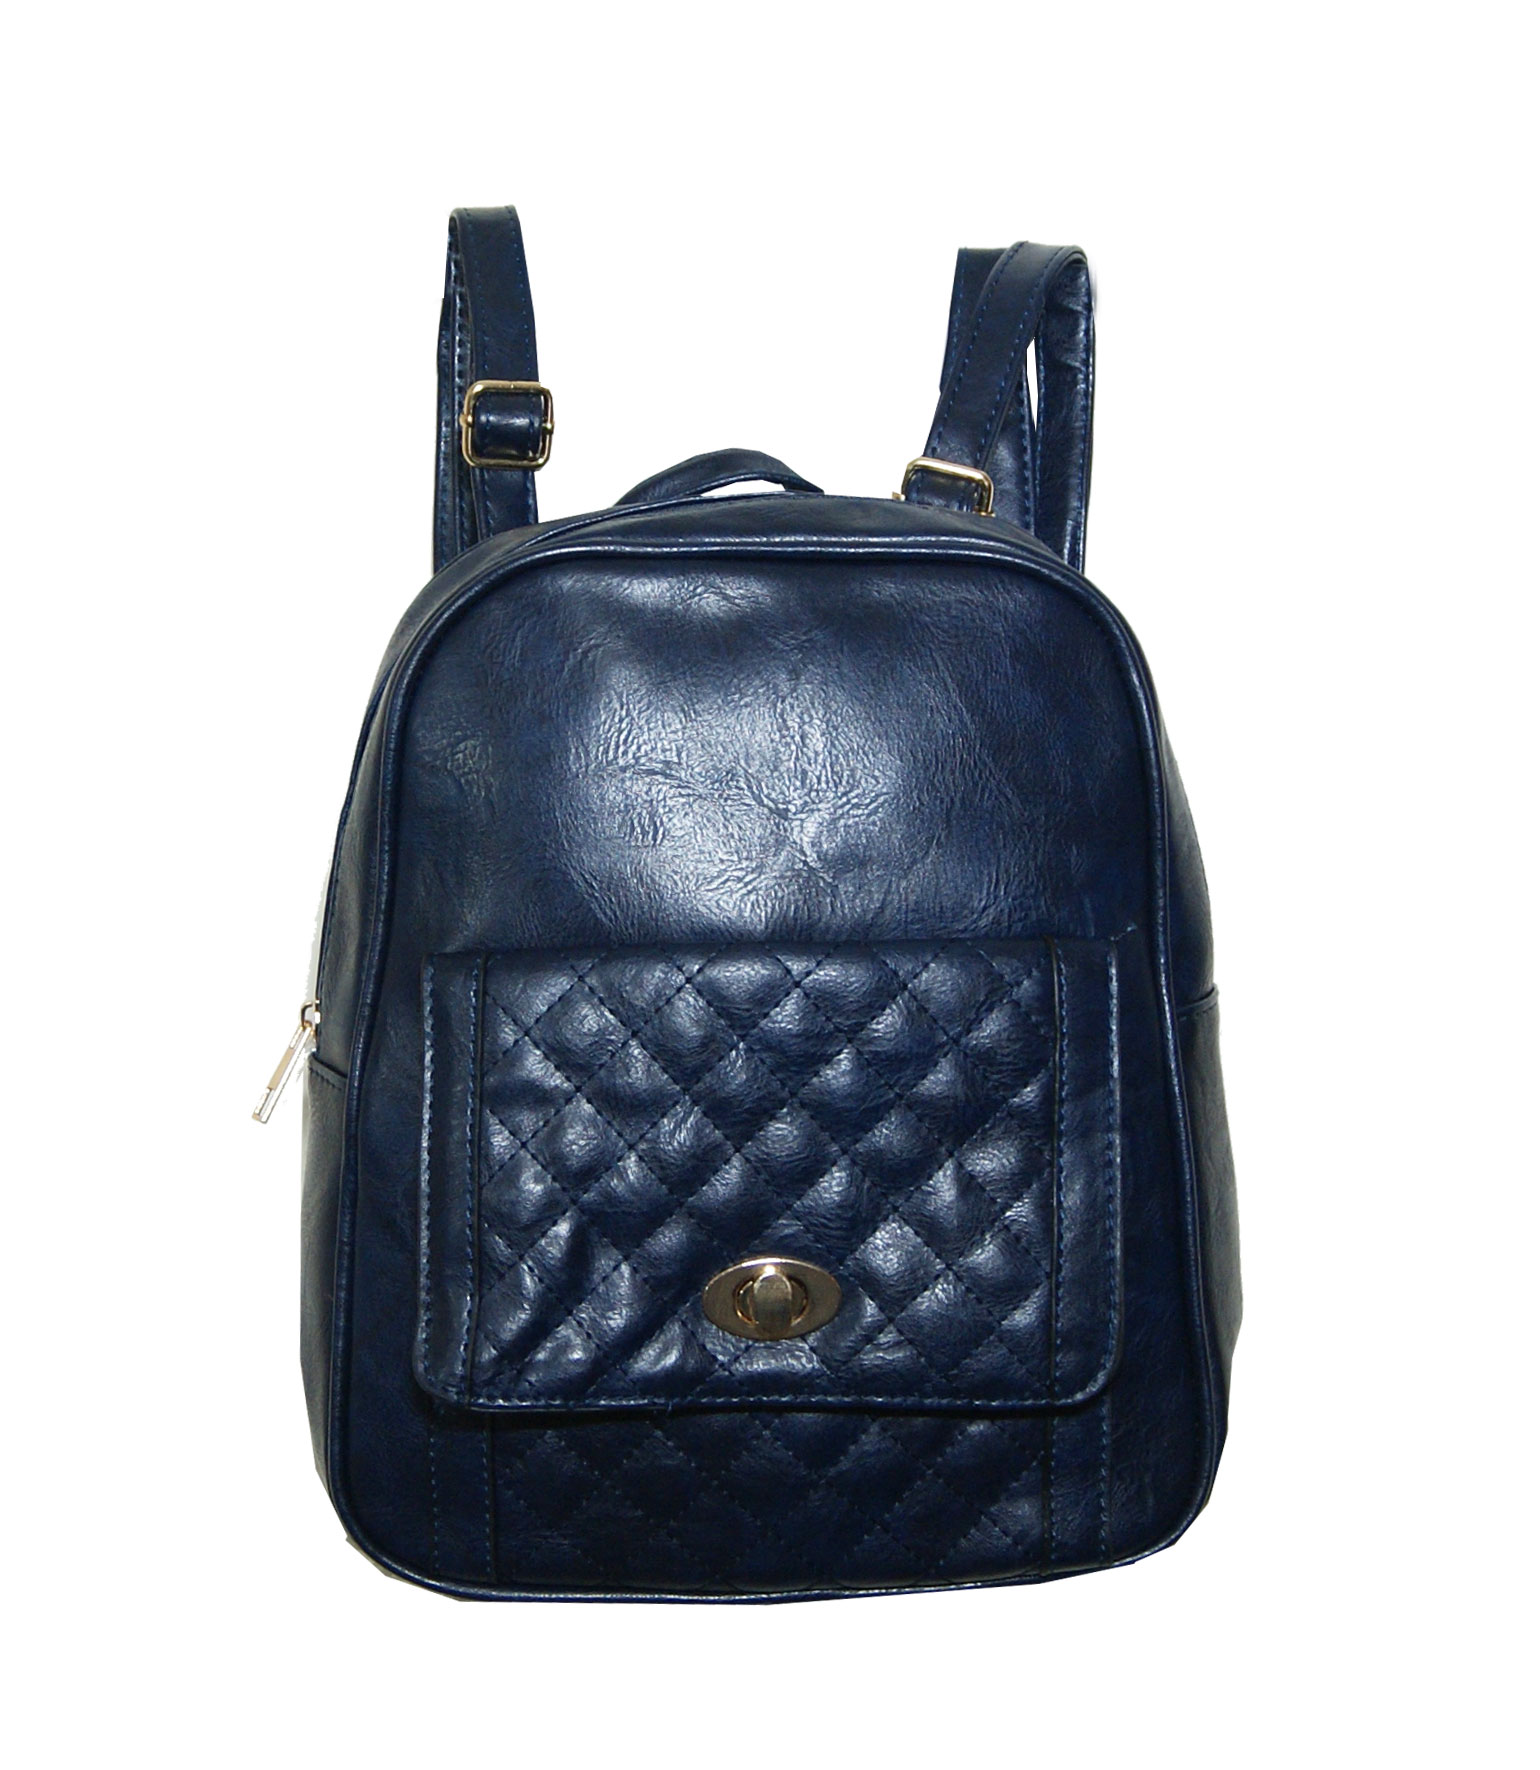 Backpack No 333 - Navy Μπλε (Silvio 333)